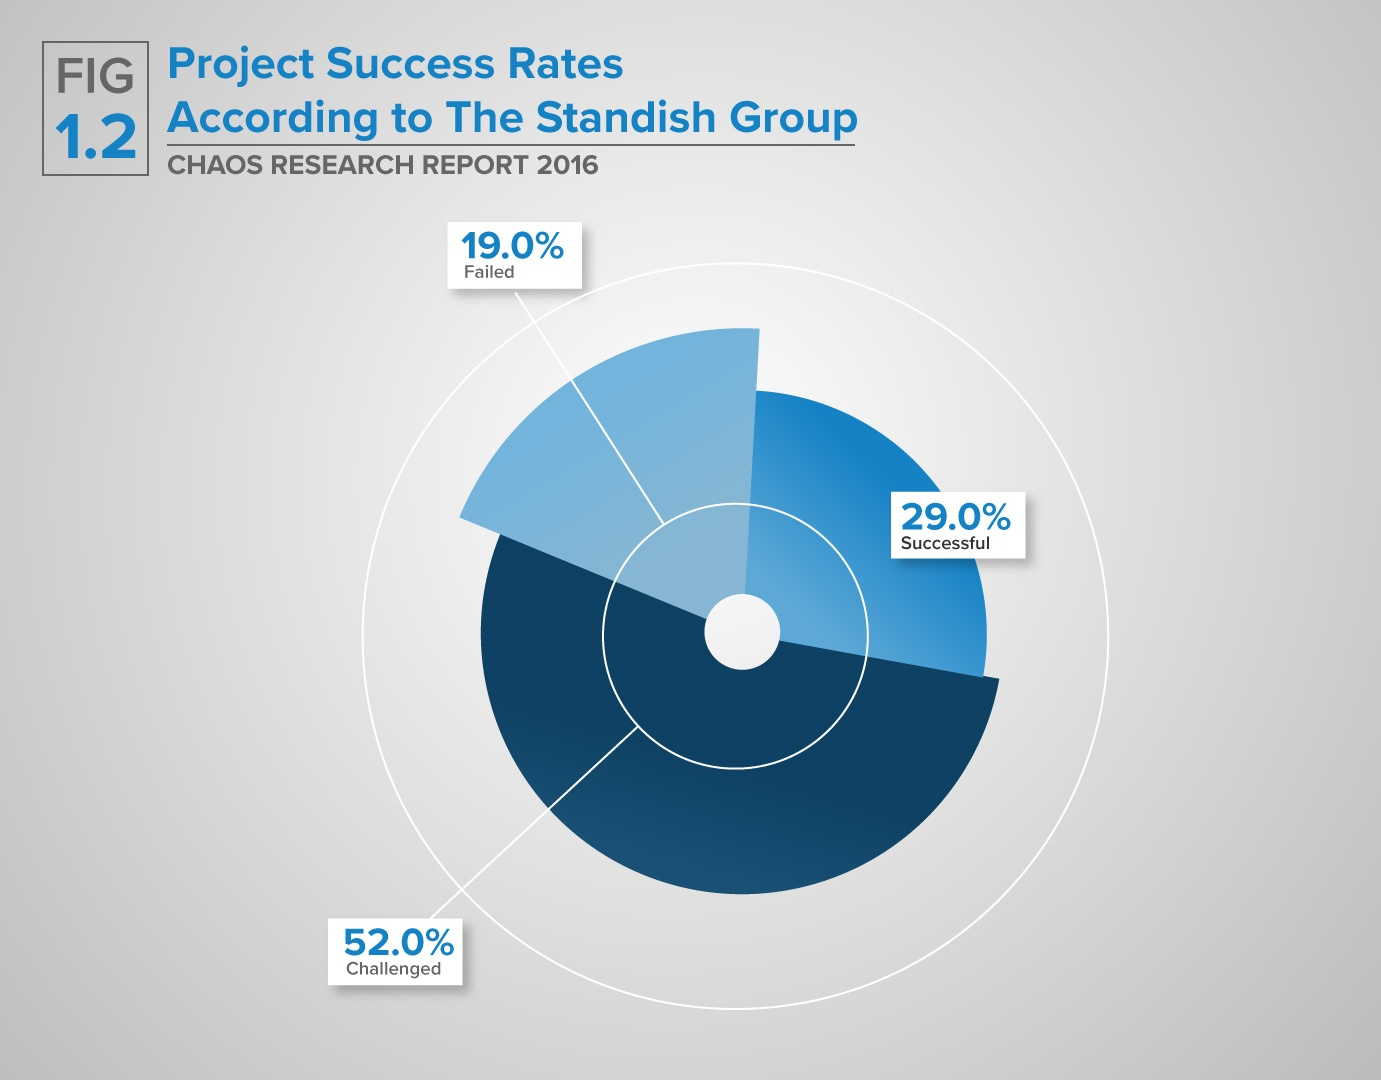 Blog-Your-Complete-Guide-to-Developing-an-Effective-Risk-Management-Plan-PieChart